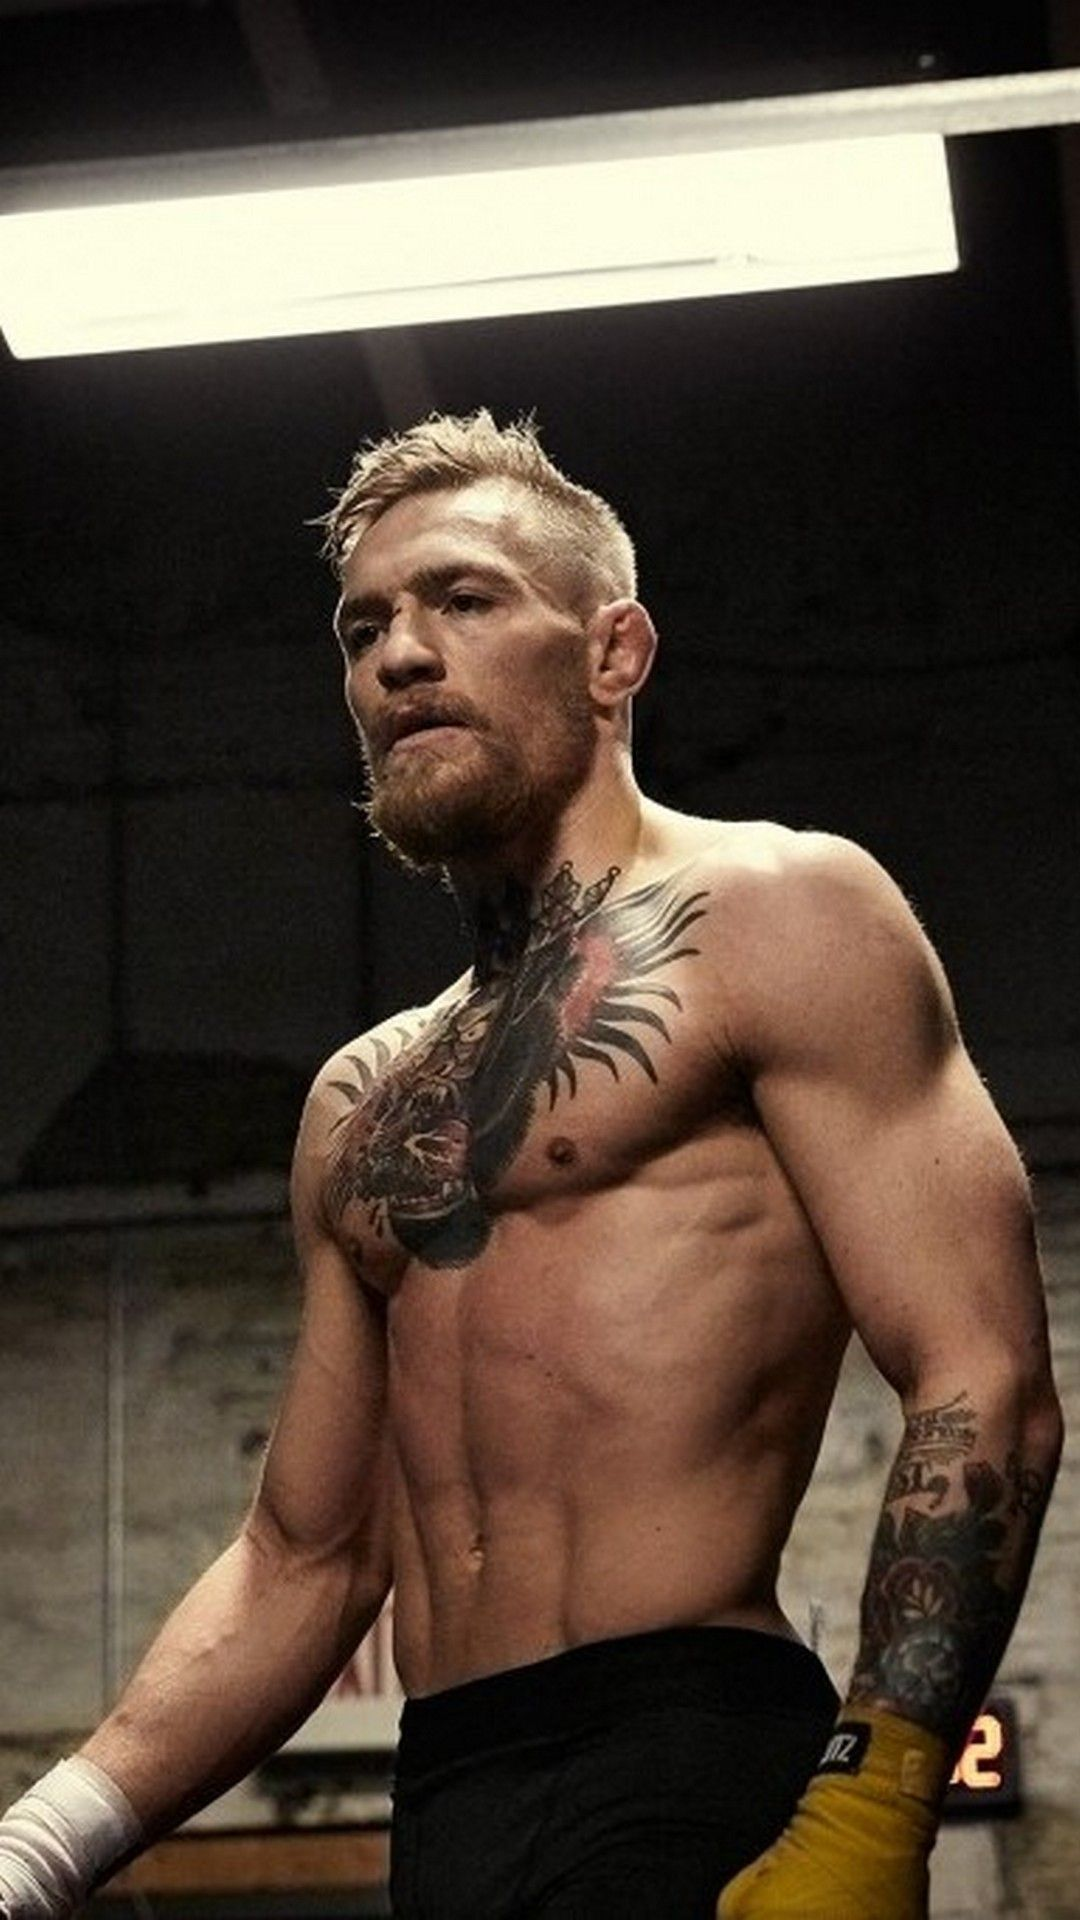 Pin By Micki White On Gorgeous Conor Mcgregor Wallpaper Mcgregor Wallpapers Conor Mcgregor